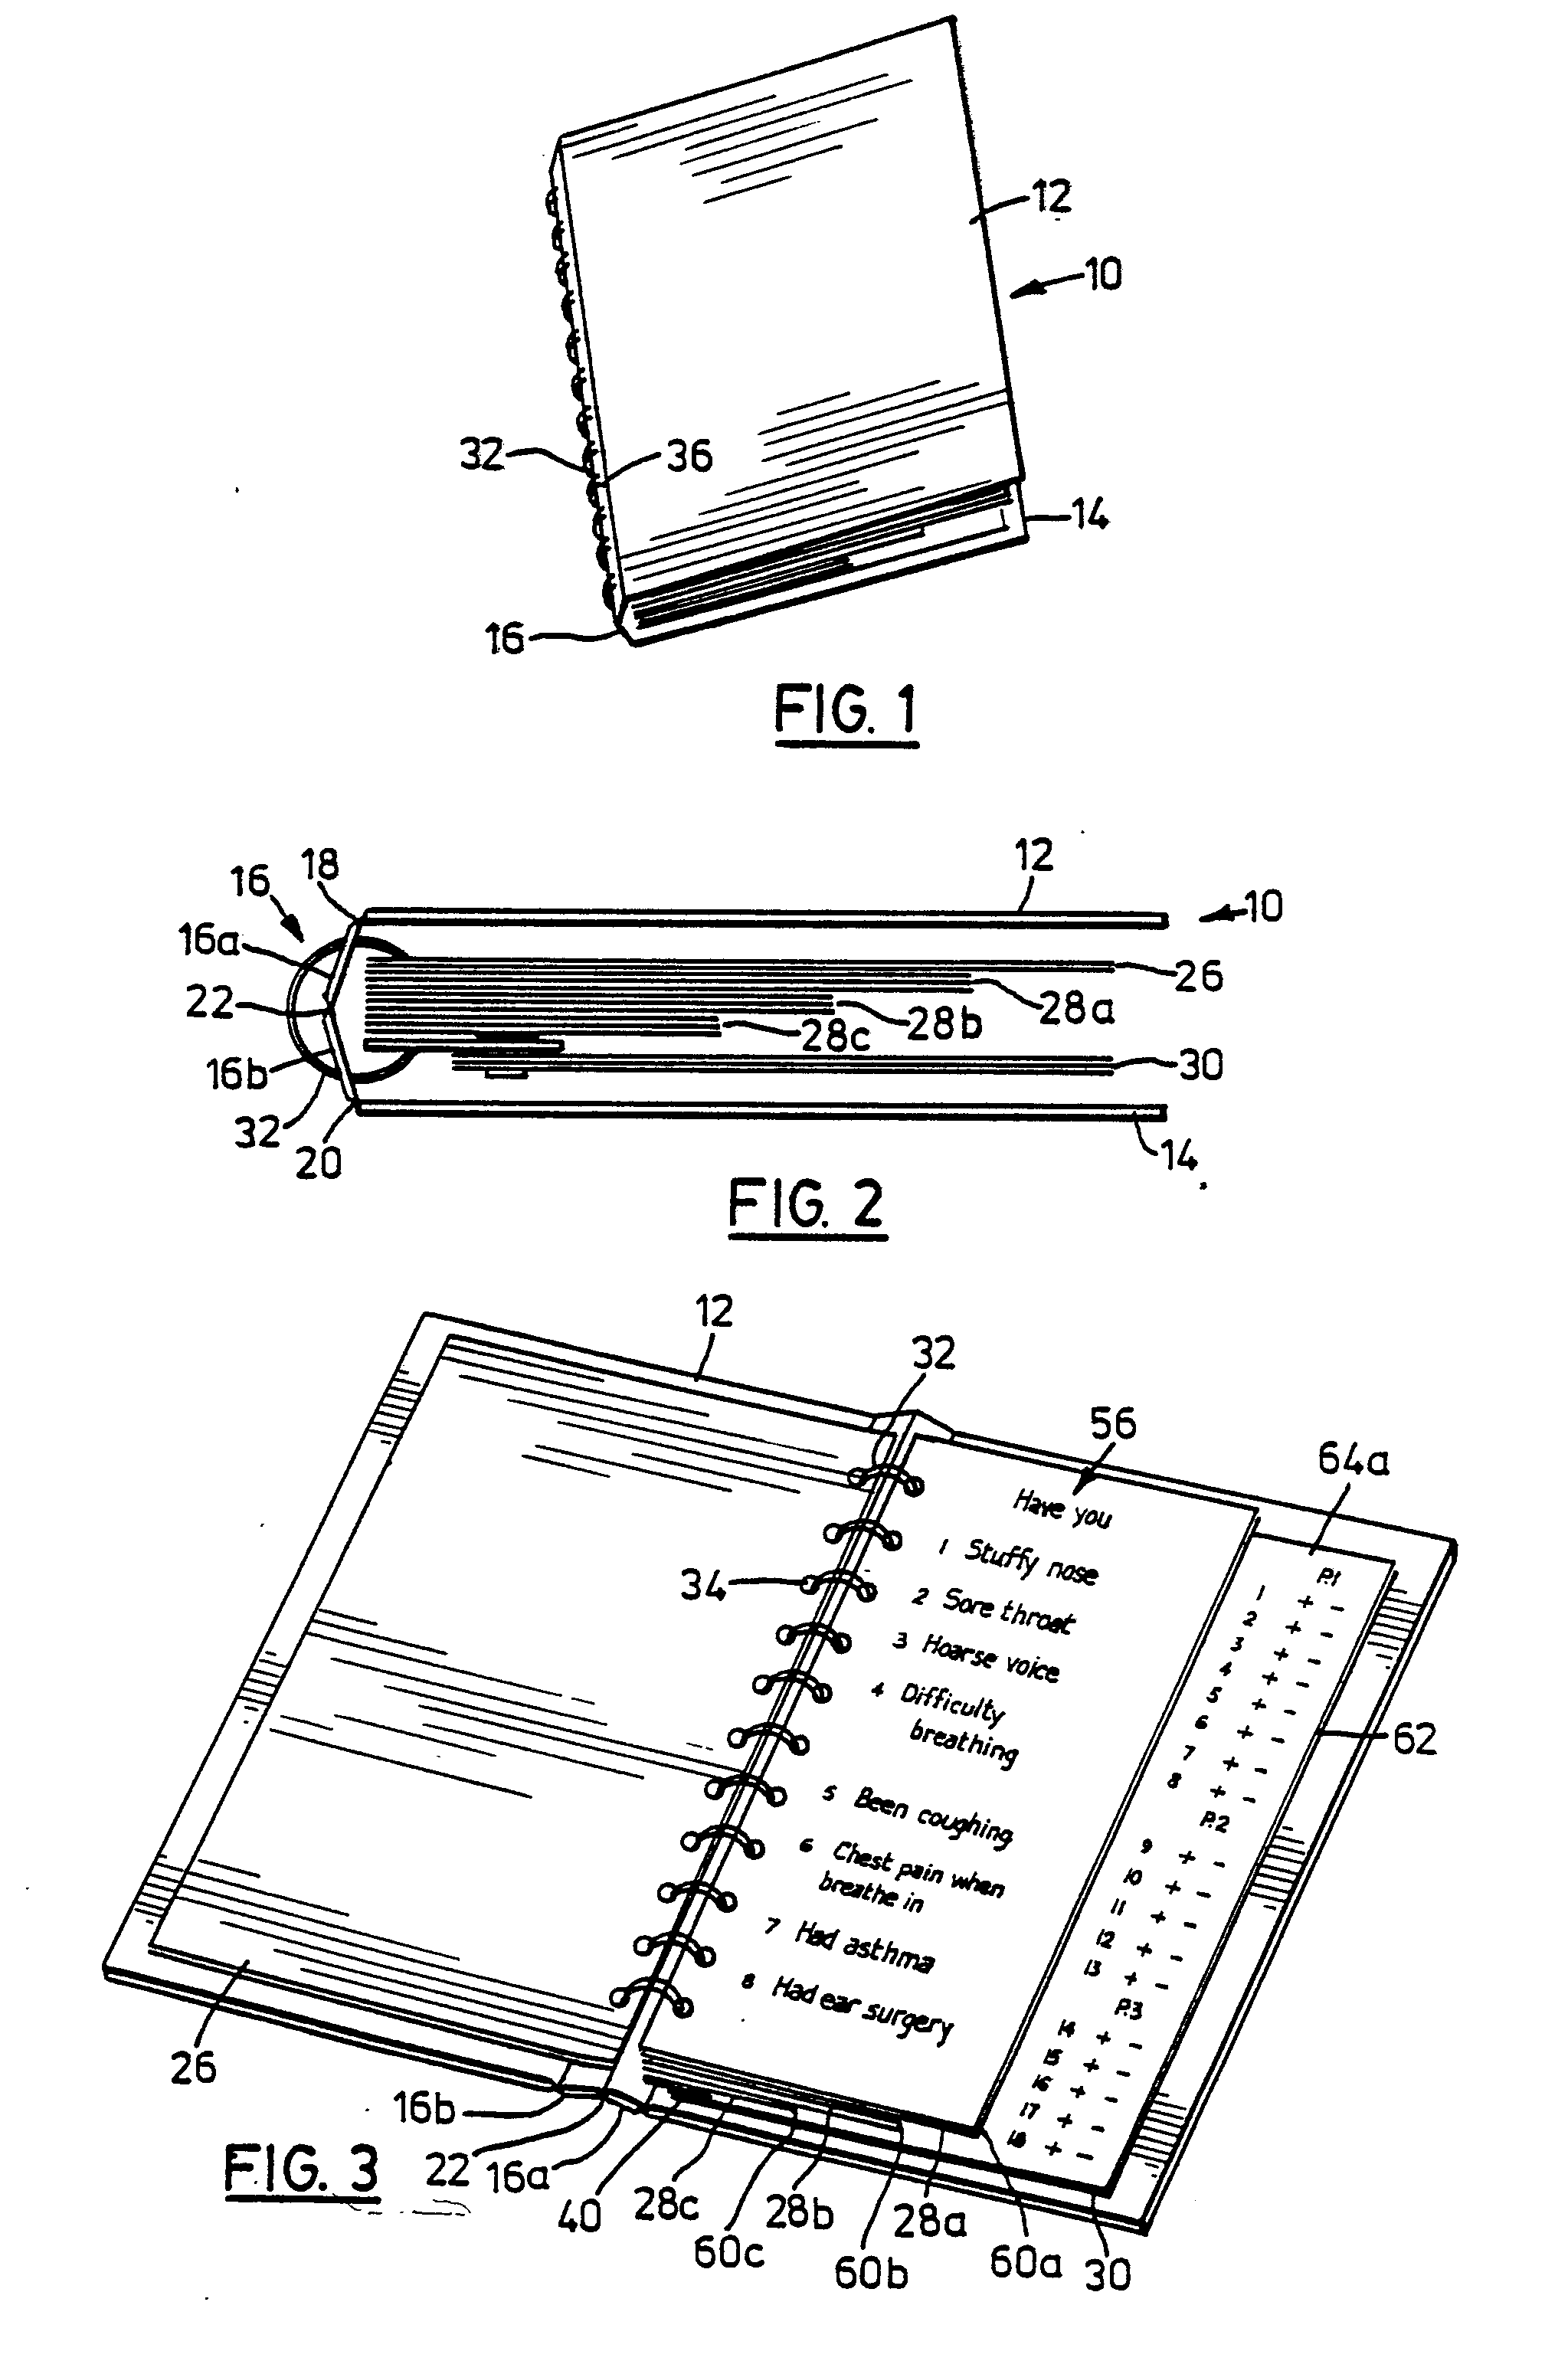 Patent Ep0239314a2 Bound Book With Bound Holder Carrying